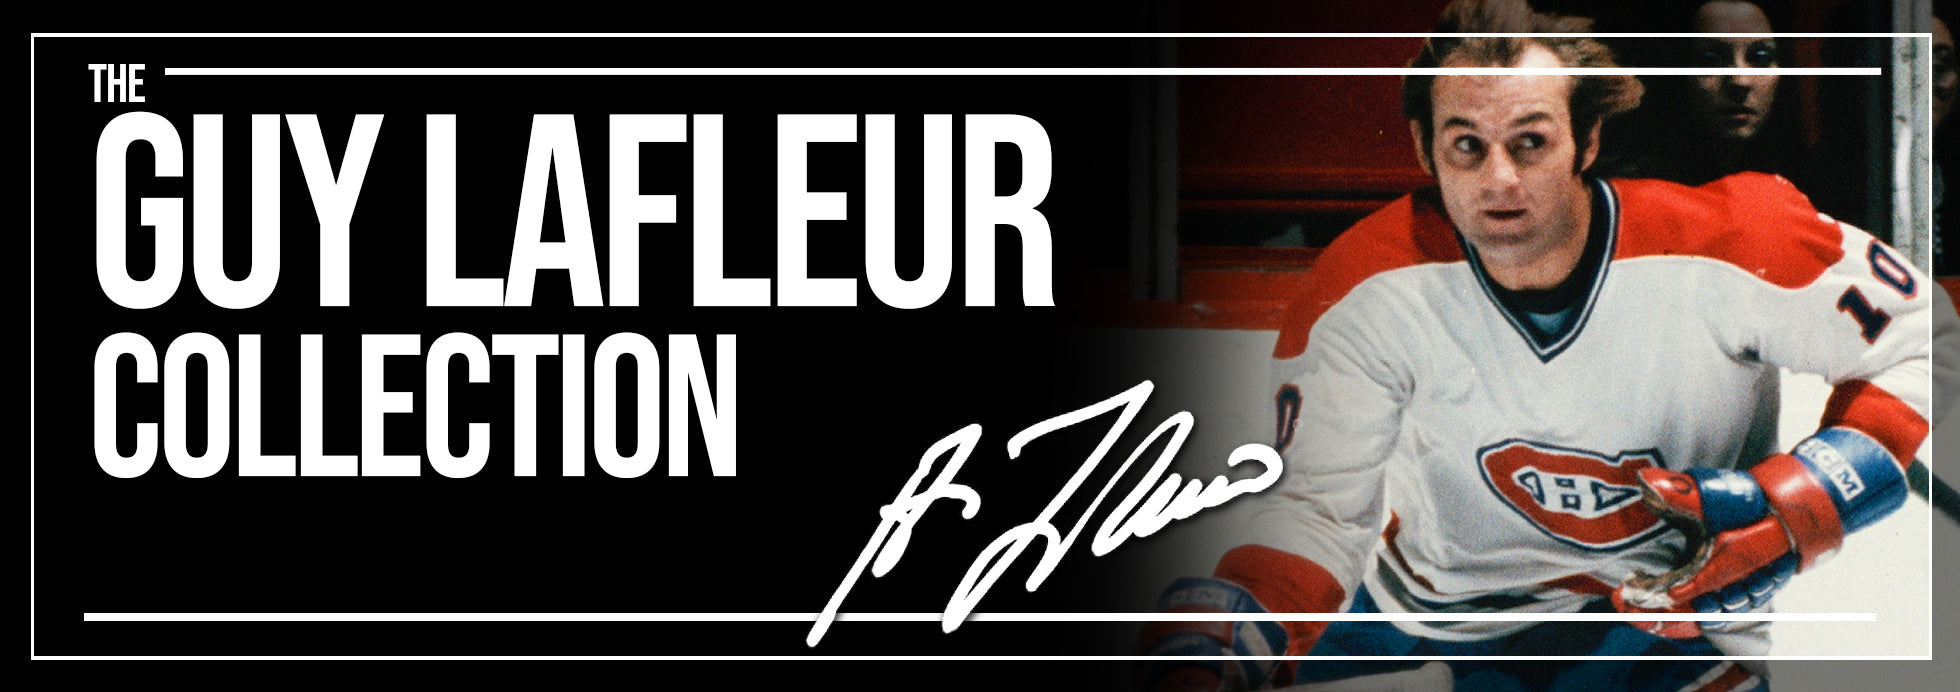 Guy Lafleur Collection Banner